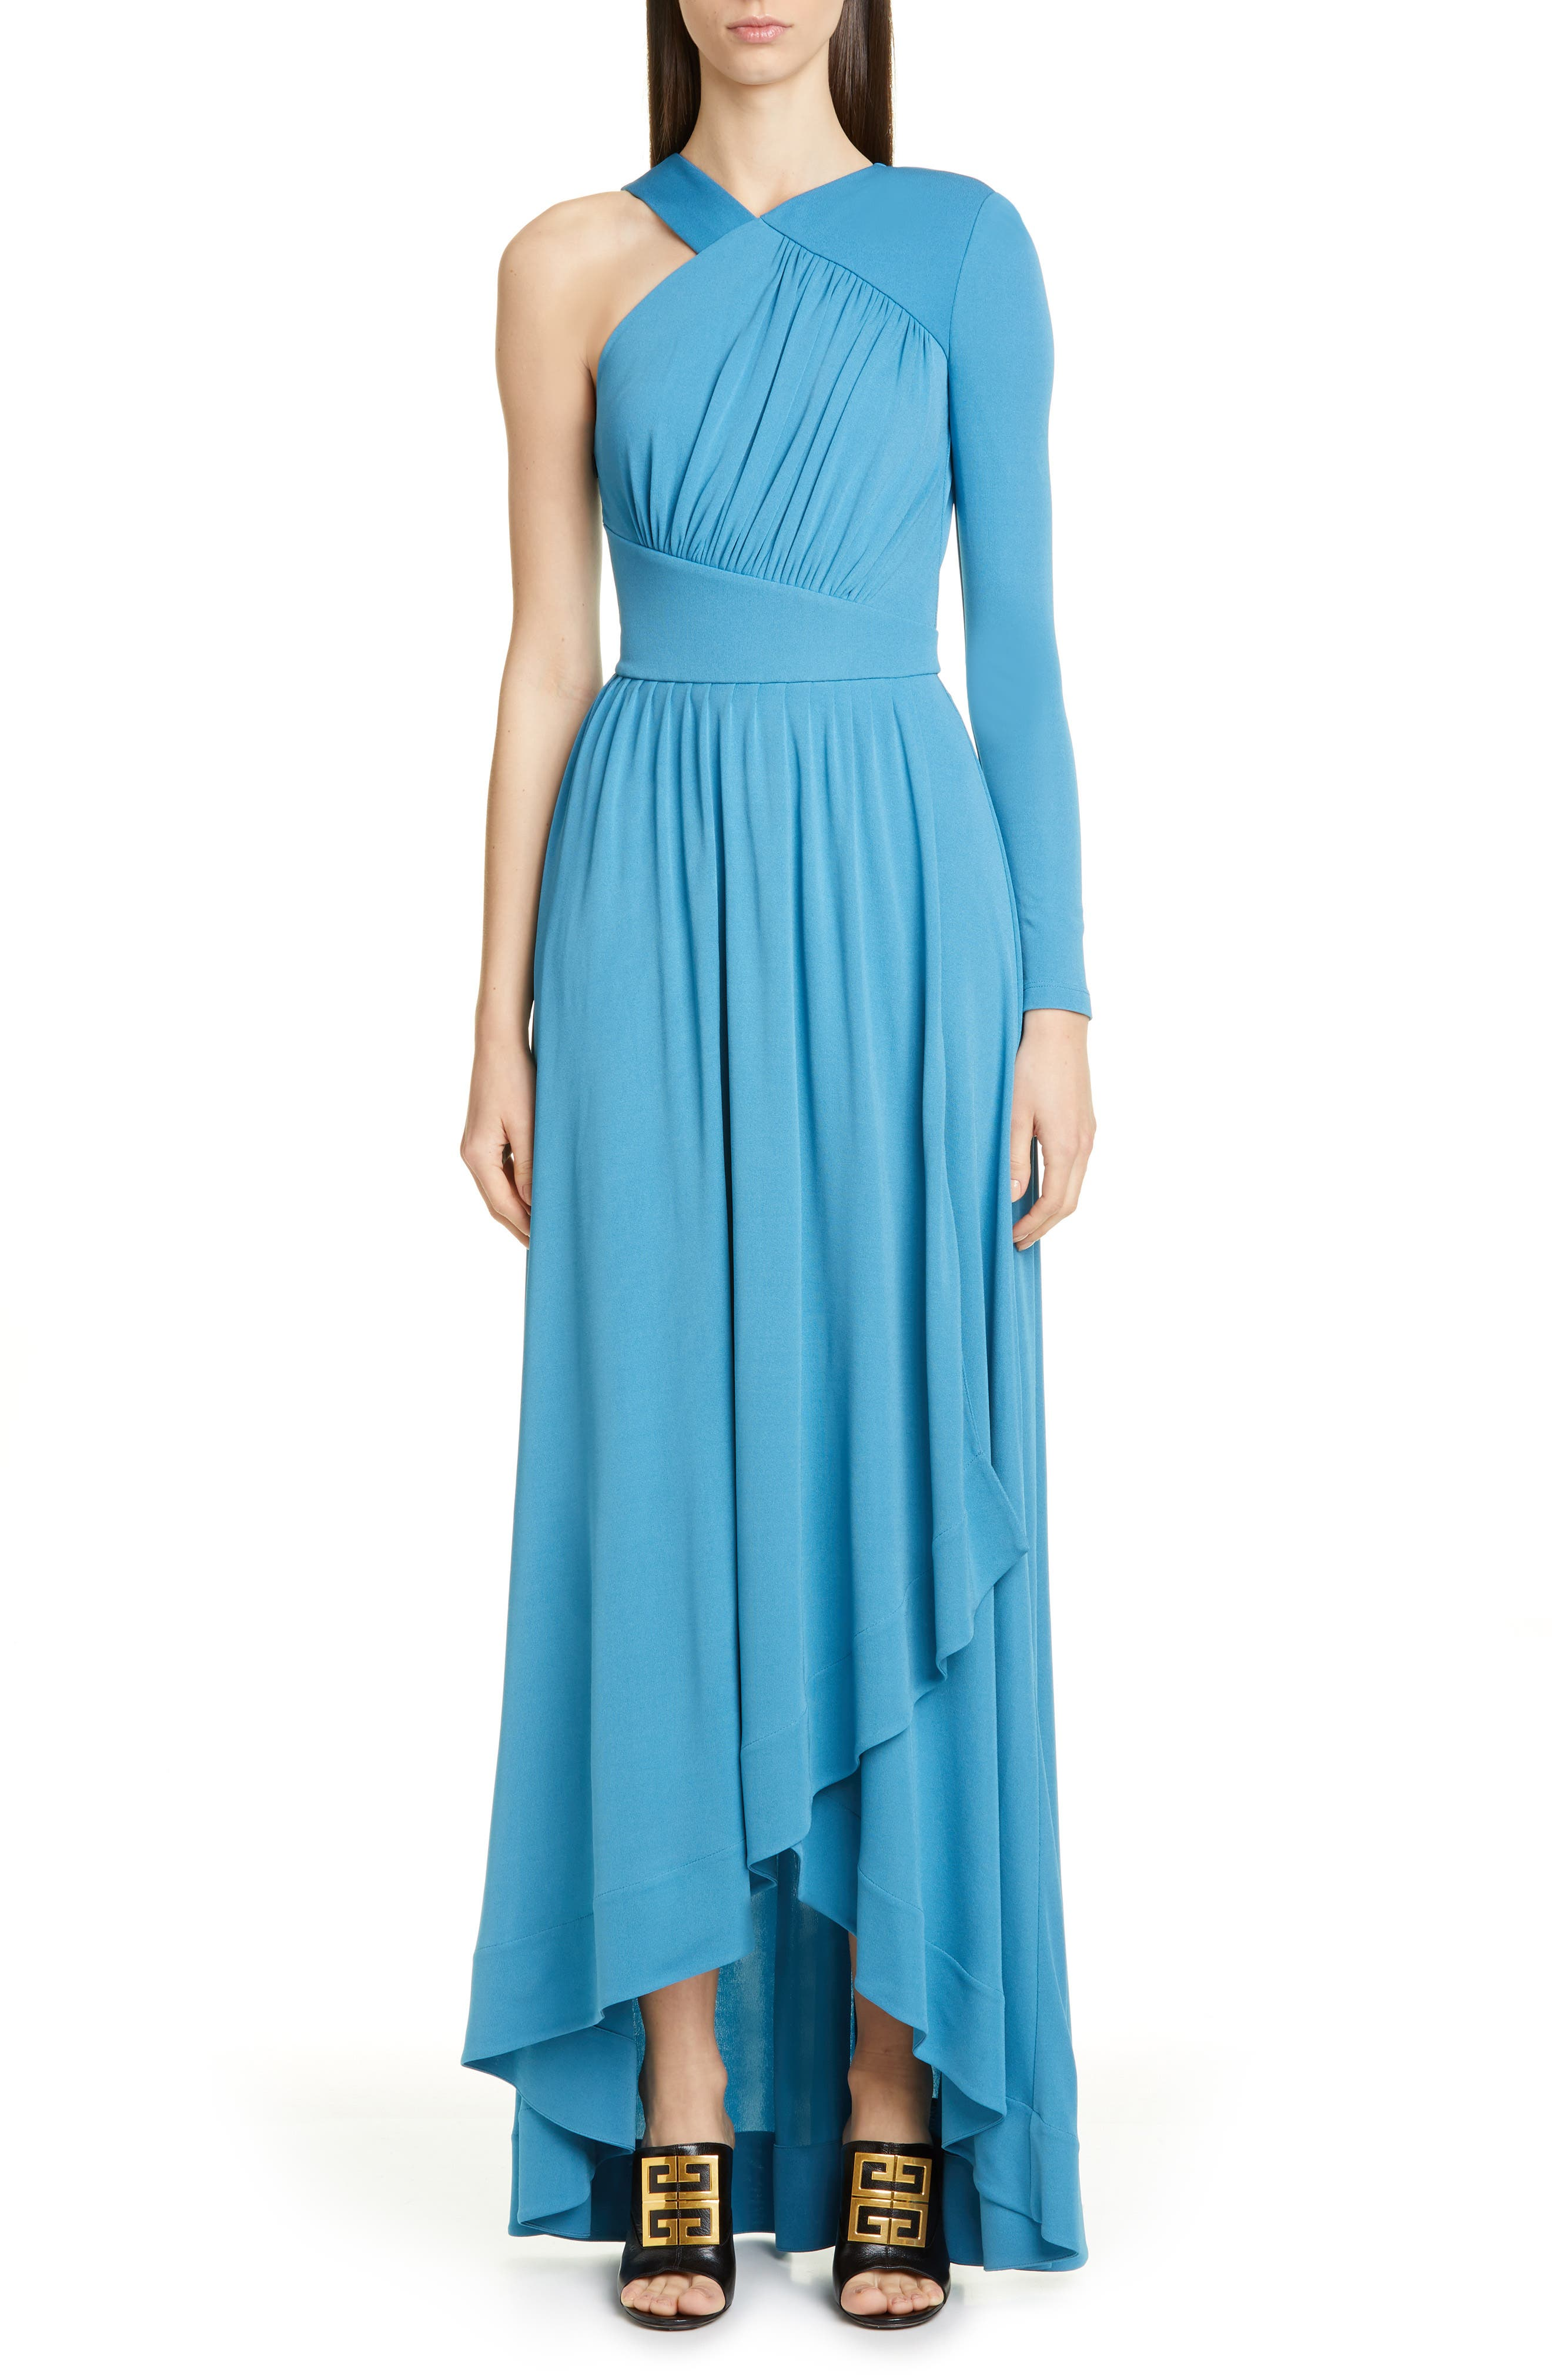 Givenchy Draped One-Shoulder Crepe Jersey Gown, 4 FR - Blue